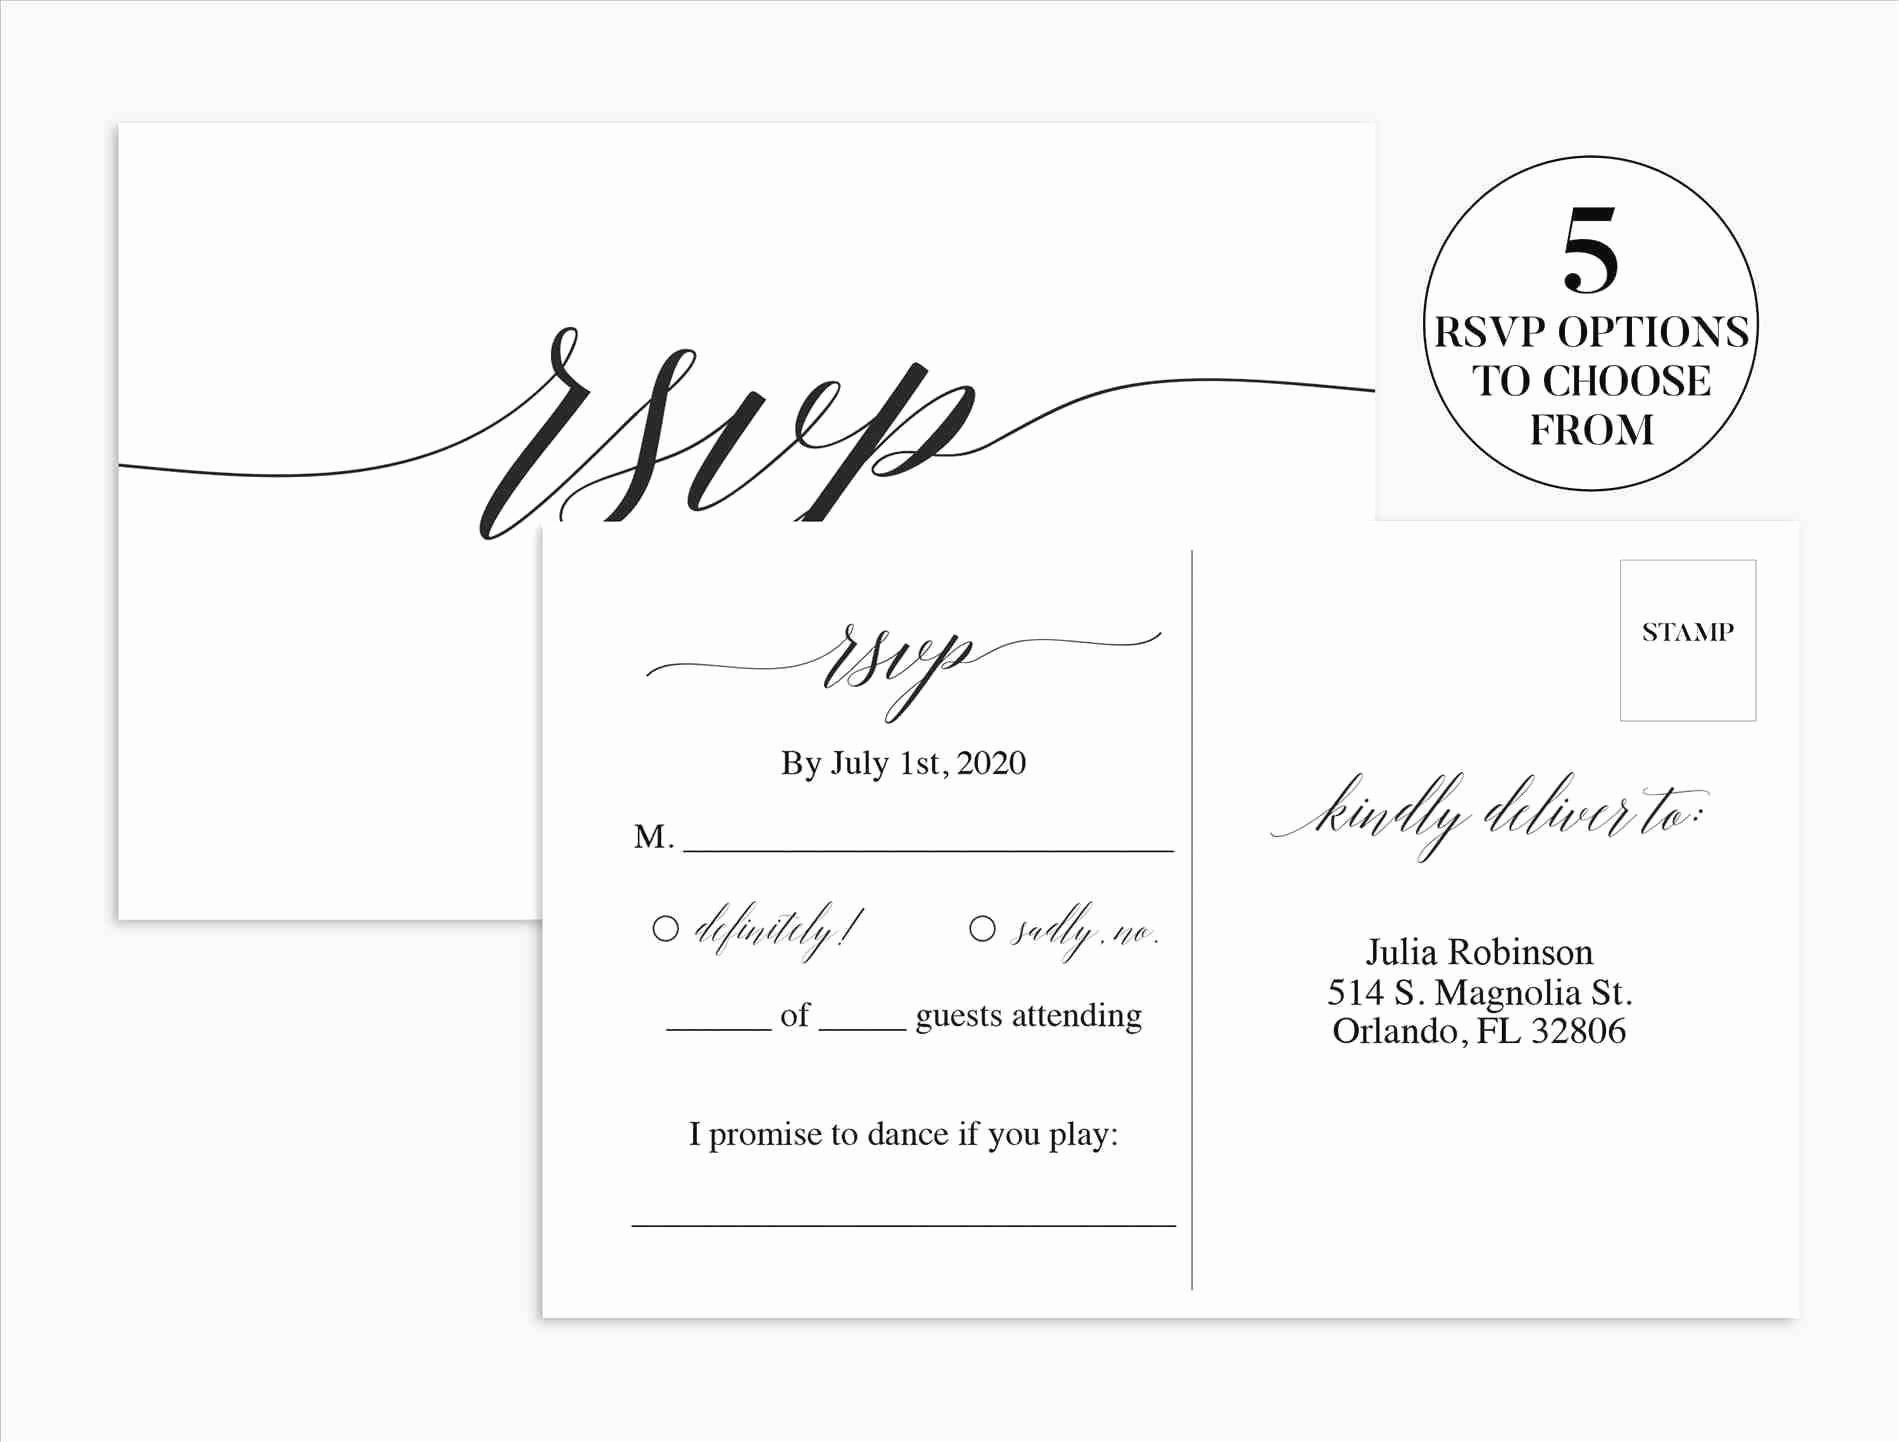 5 X 7 Postcard Template Elegant Lovely Free 5x7 Christmas Card Templates for Shop